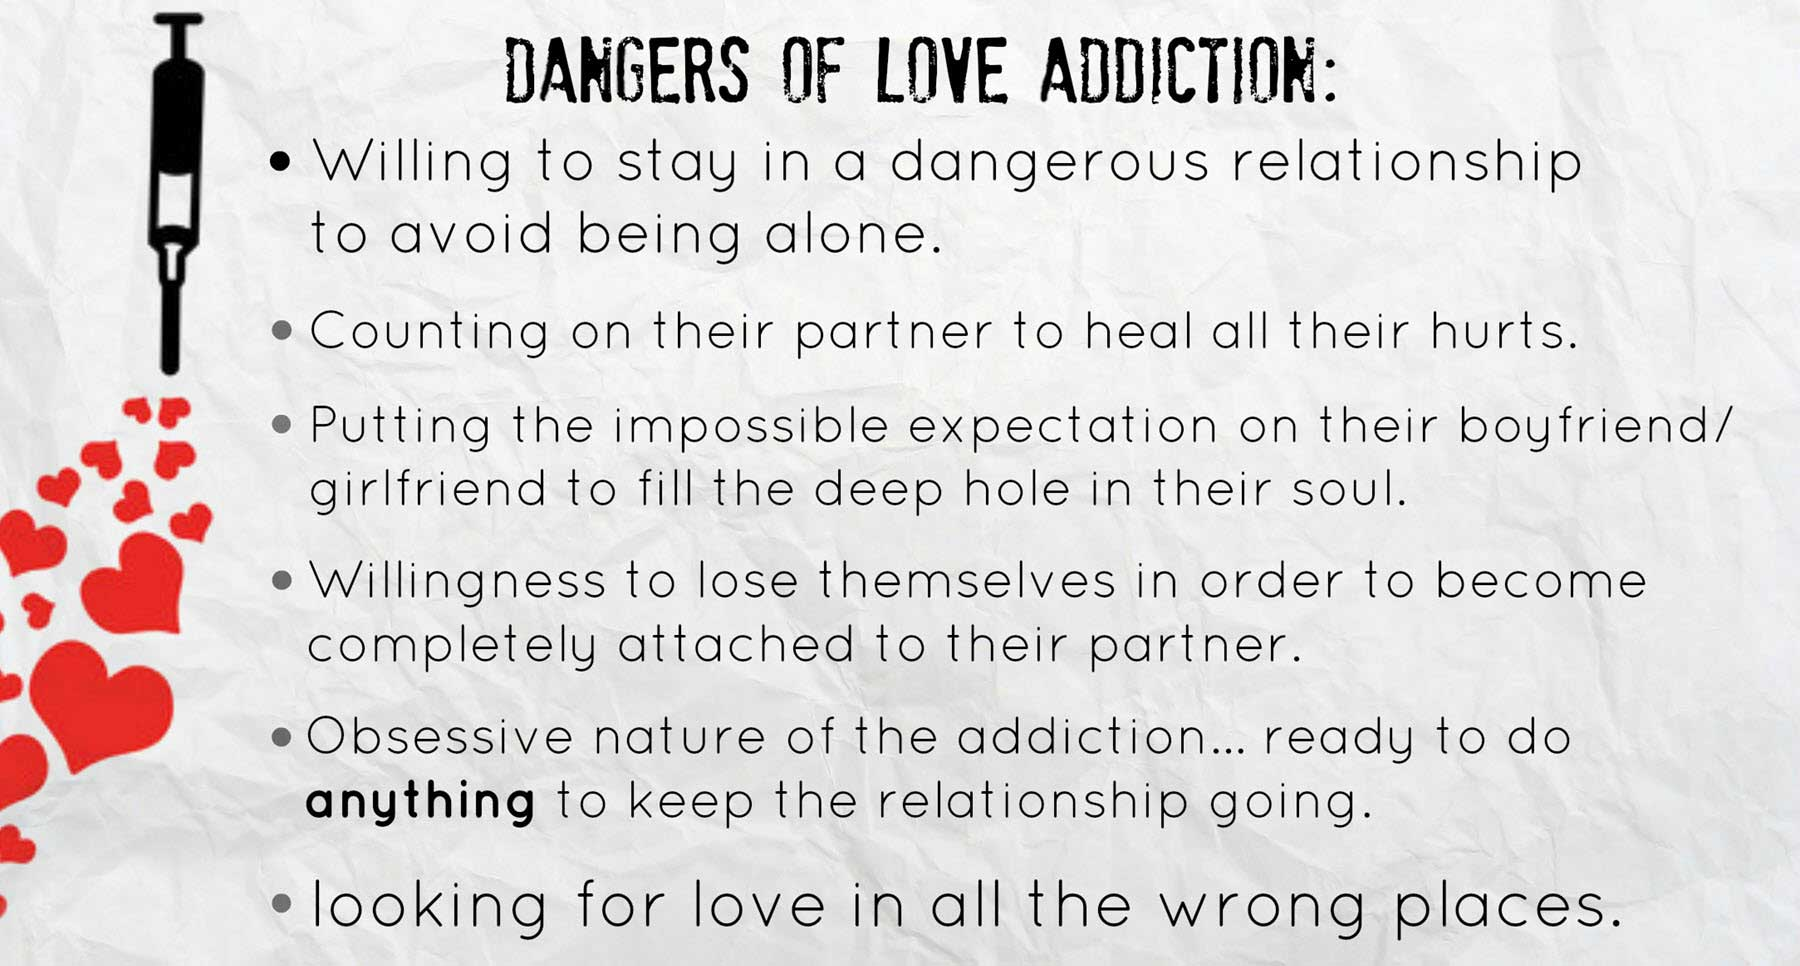 dangers-of-love-addiction